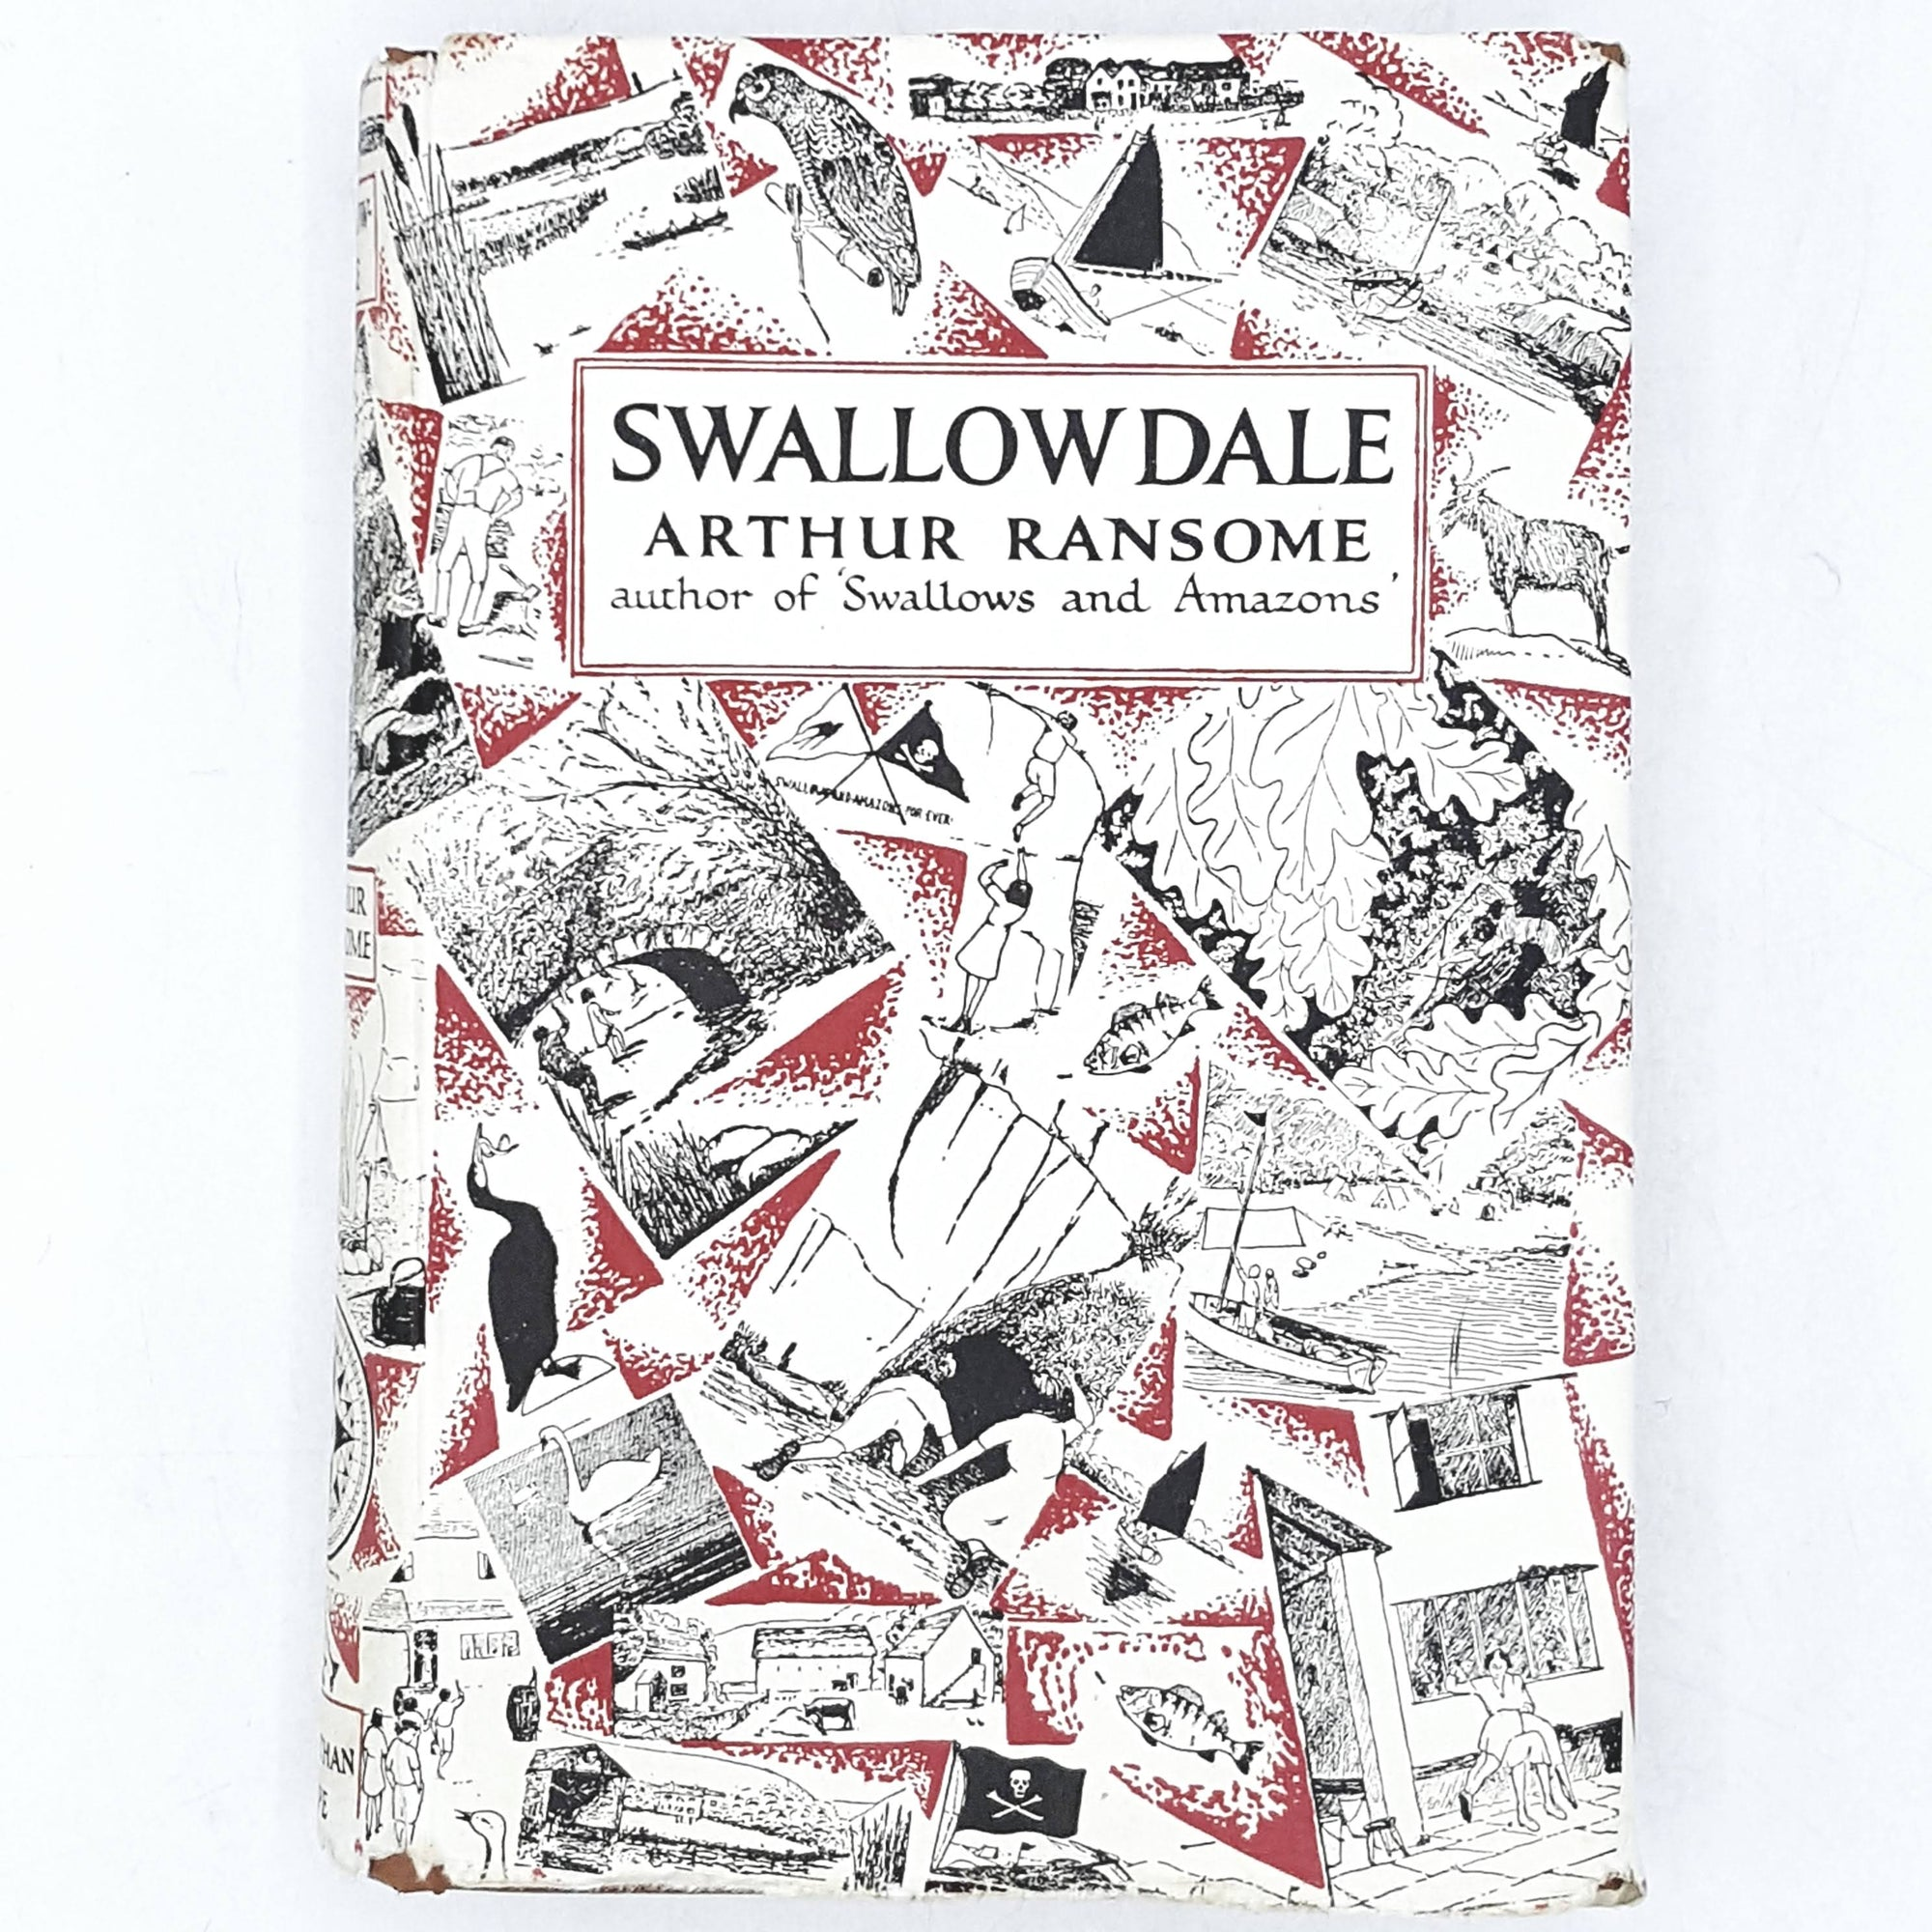 Illustrated Swallowdale by Arthur Ransome 1968